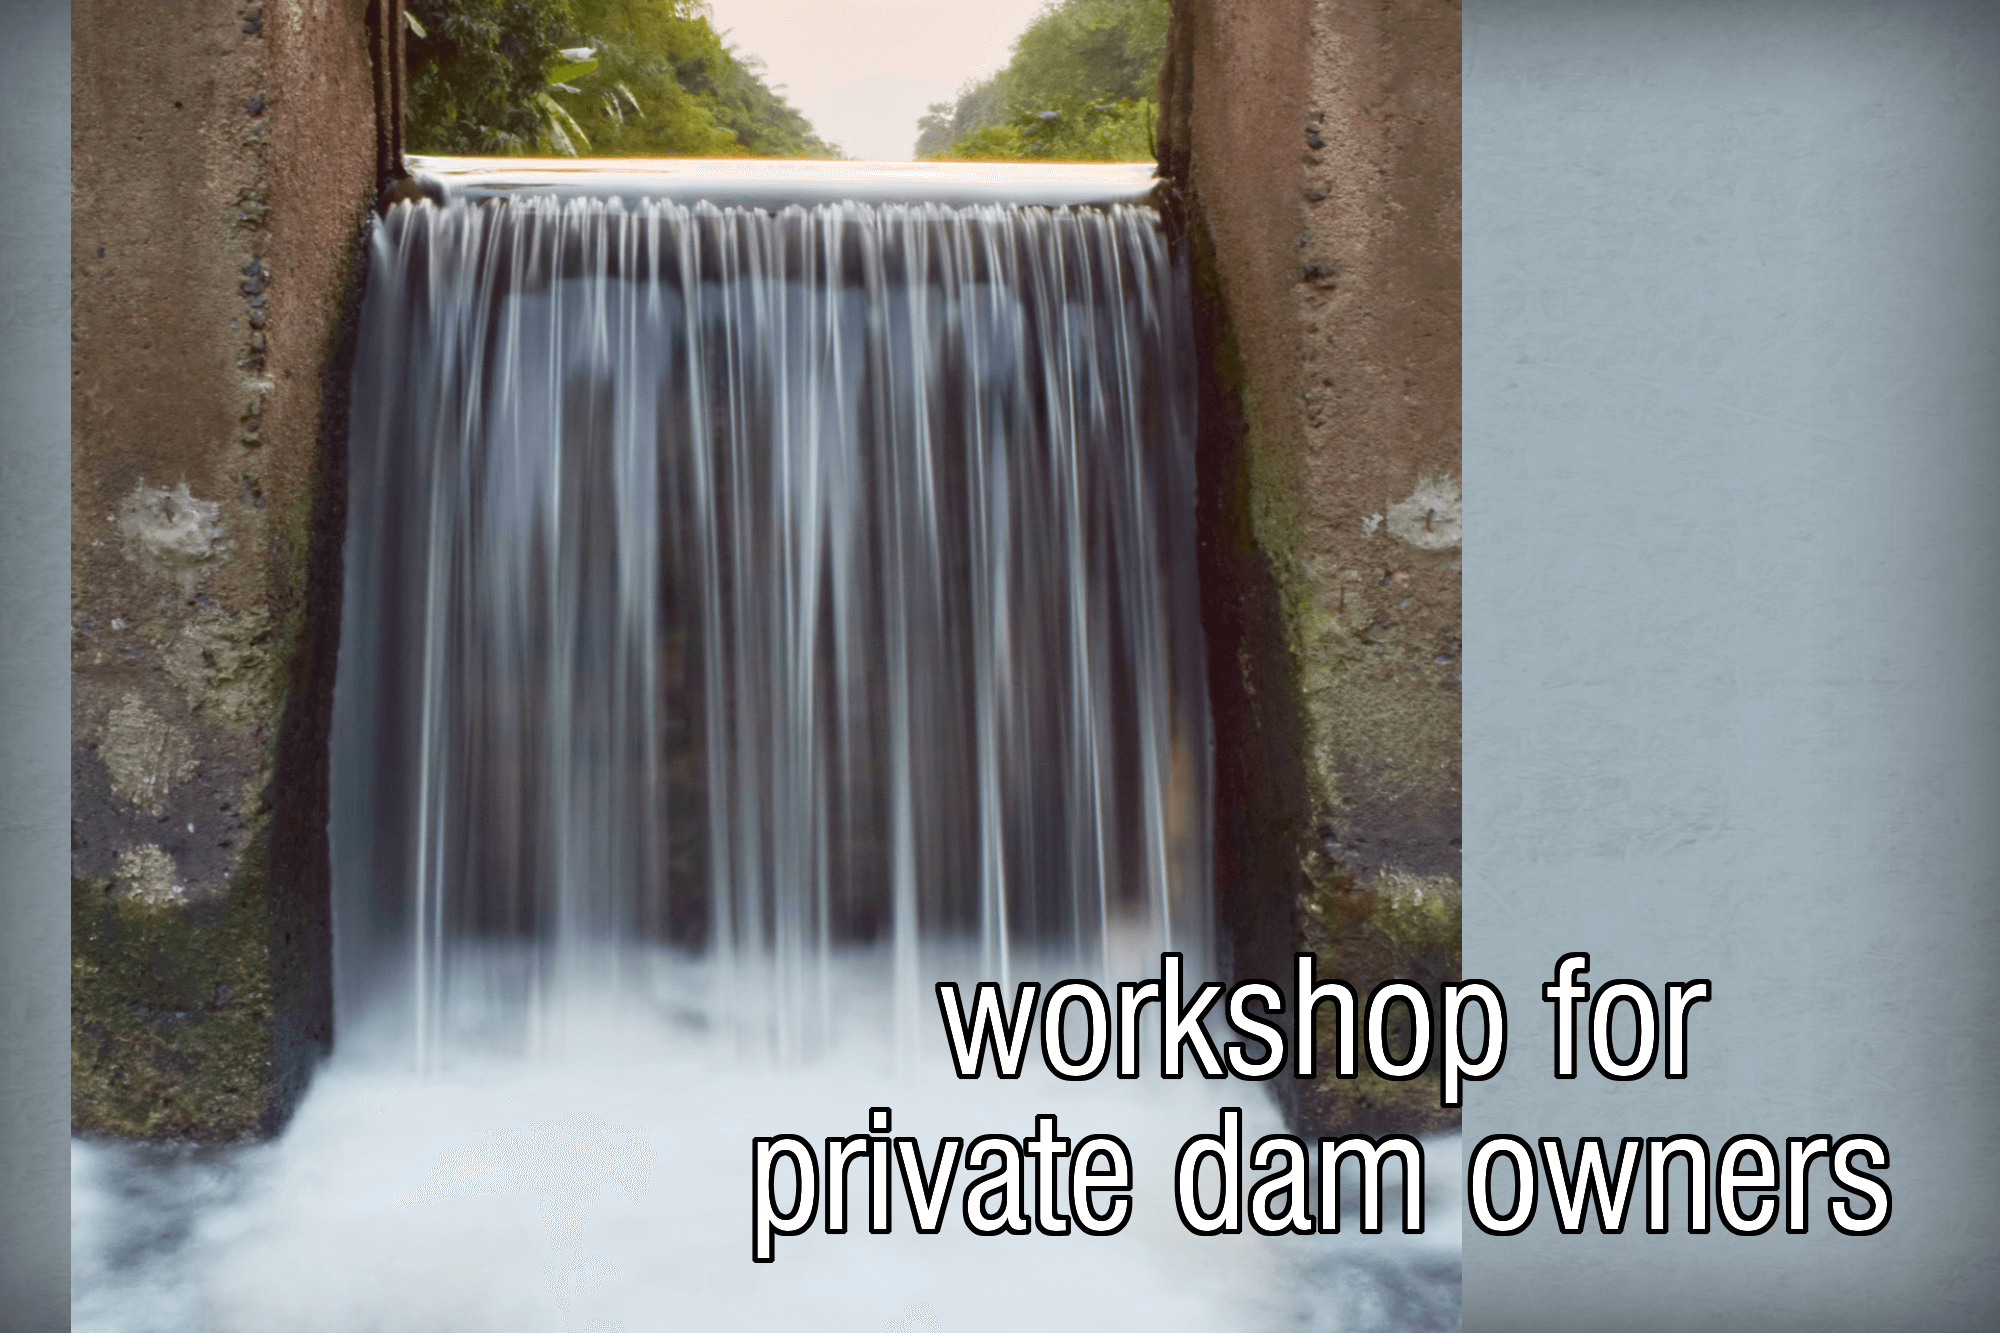 Picture of dam with the words workshop for private dam owners